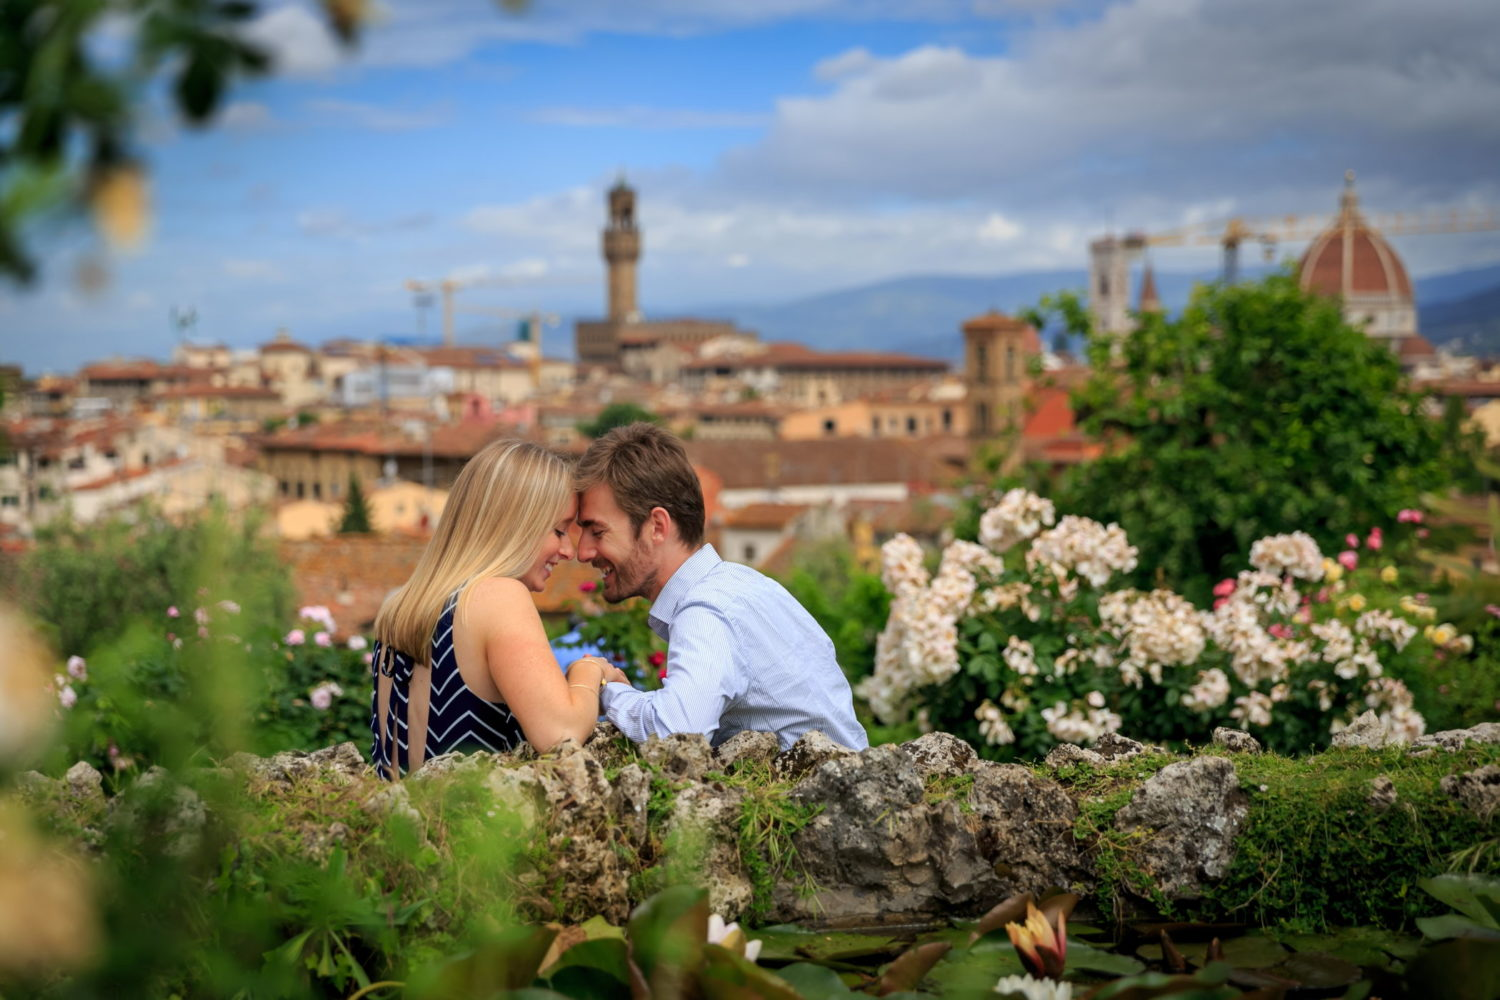 Dolce Italia Photography Florence Engagement Honeymoon Photo Shoot Session Firenzesnap 피렌체 스냅 로마 스냅 베니스 스냅 이탈리아 스냅 허니문 스냅